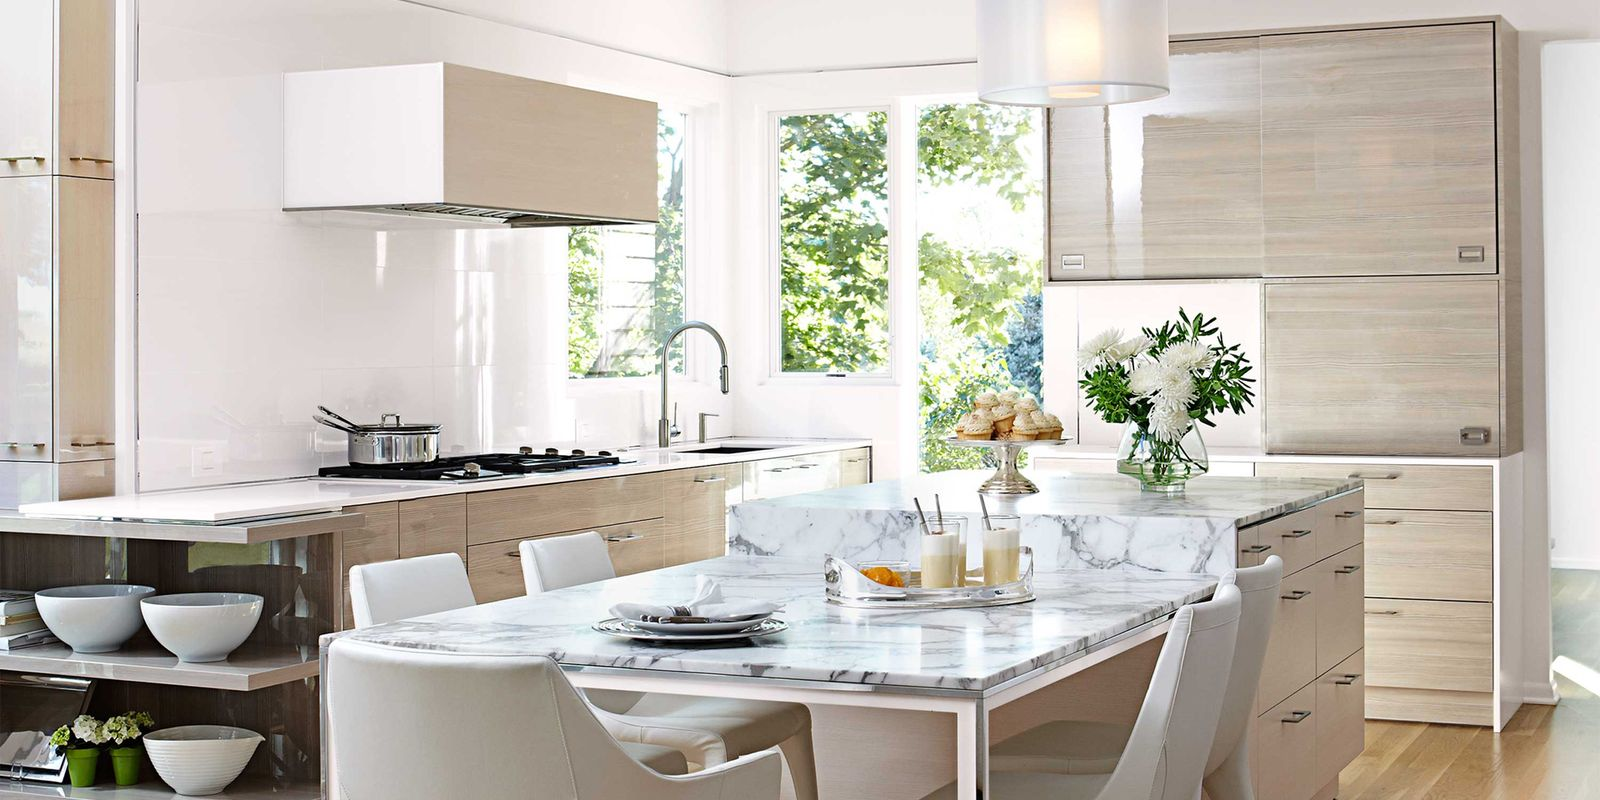 Bright Kitchen Cabinets Airy And Bright Kitchen Contemporary Kitchen Design